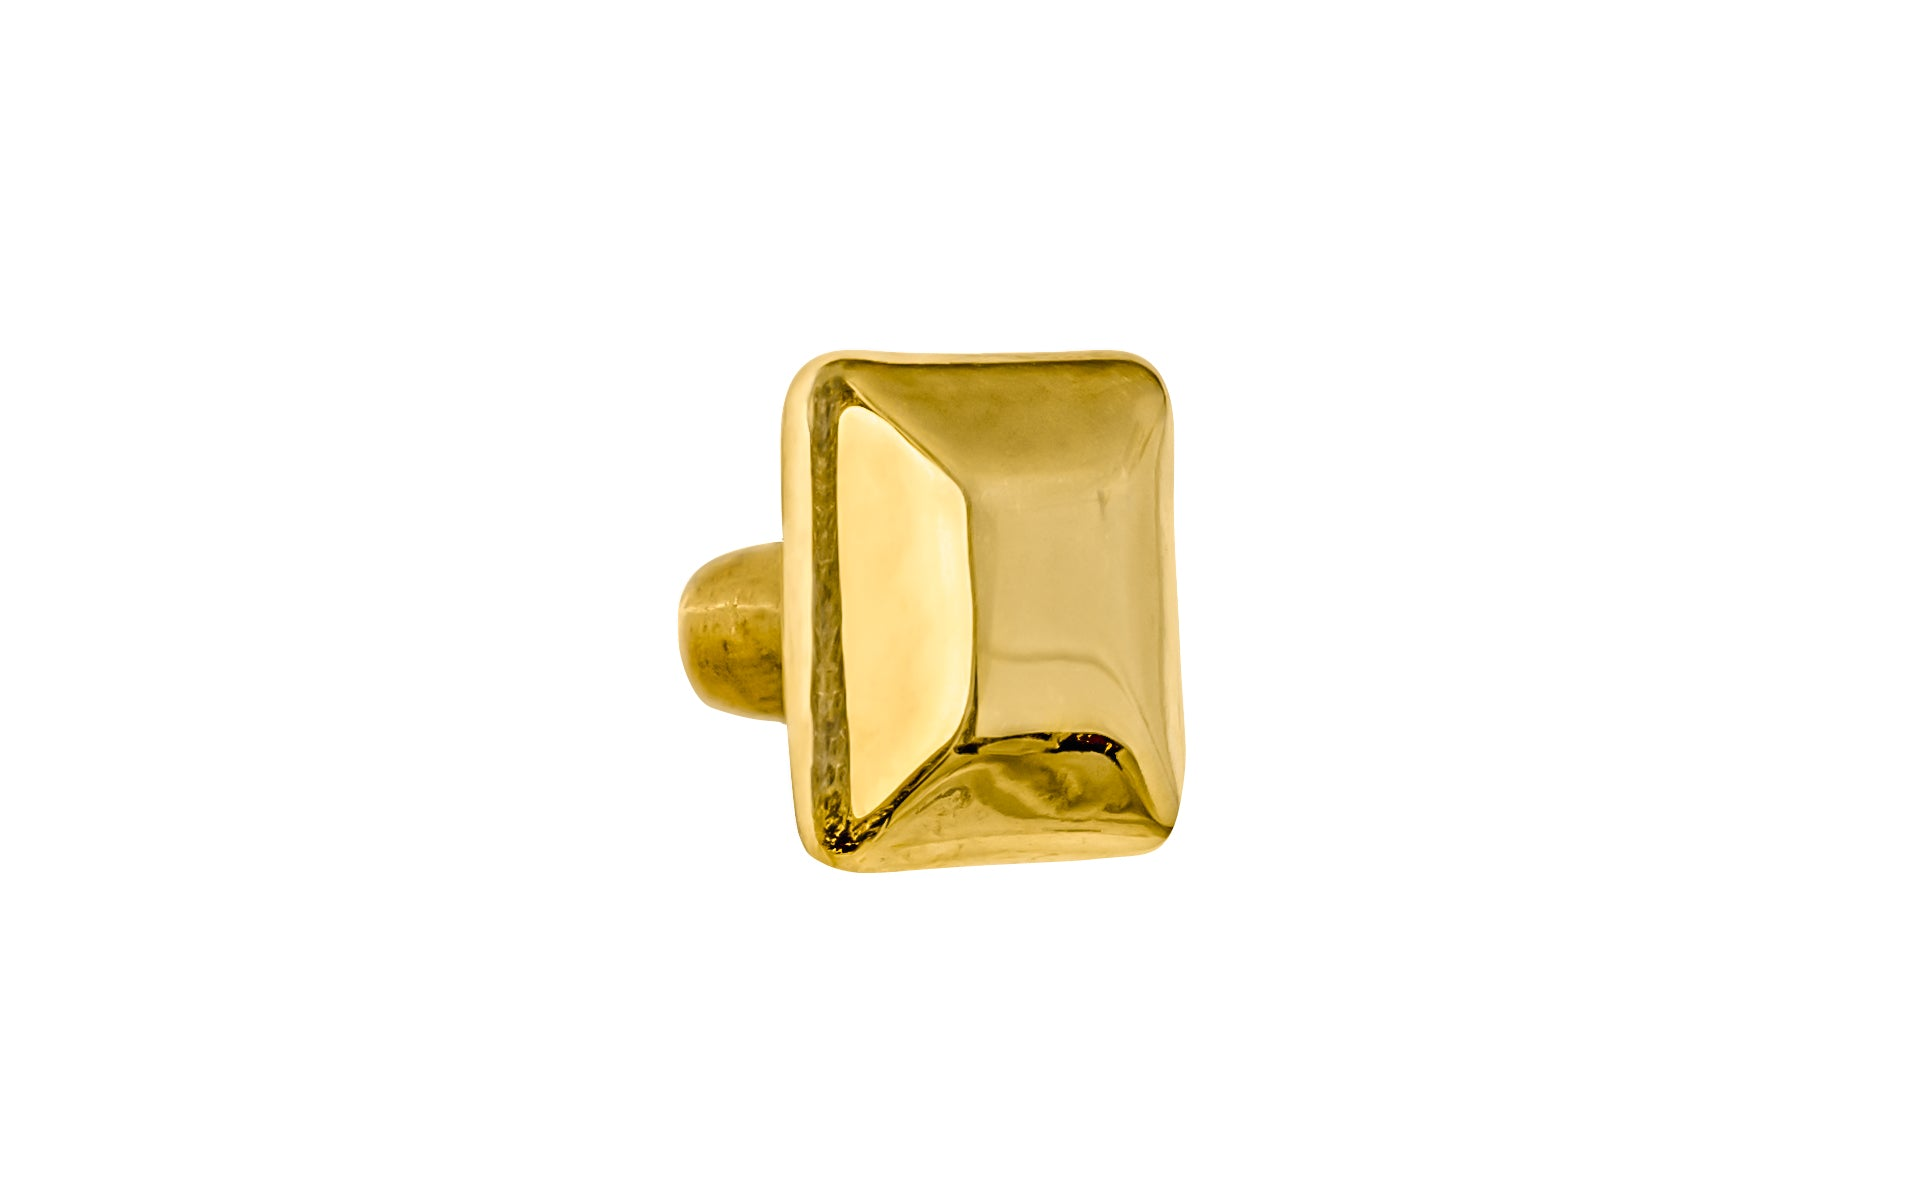 Solid Brass Square Knob ~ 3/4